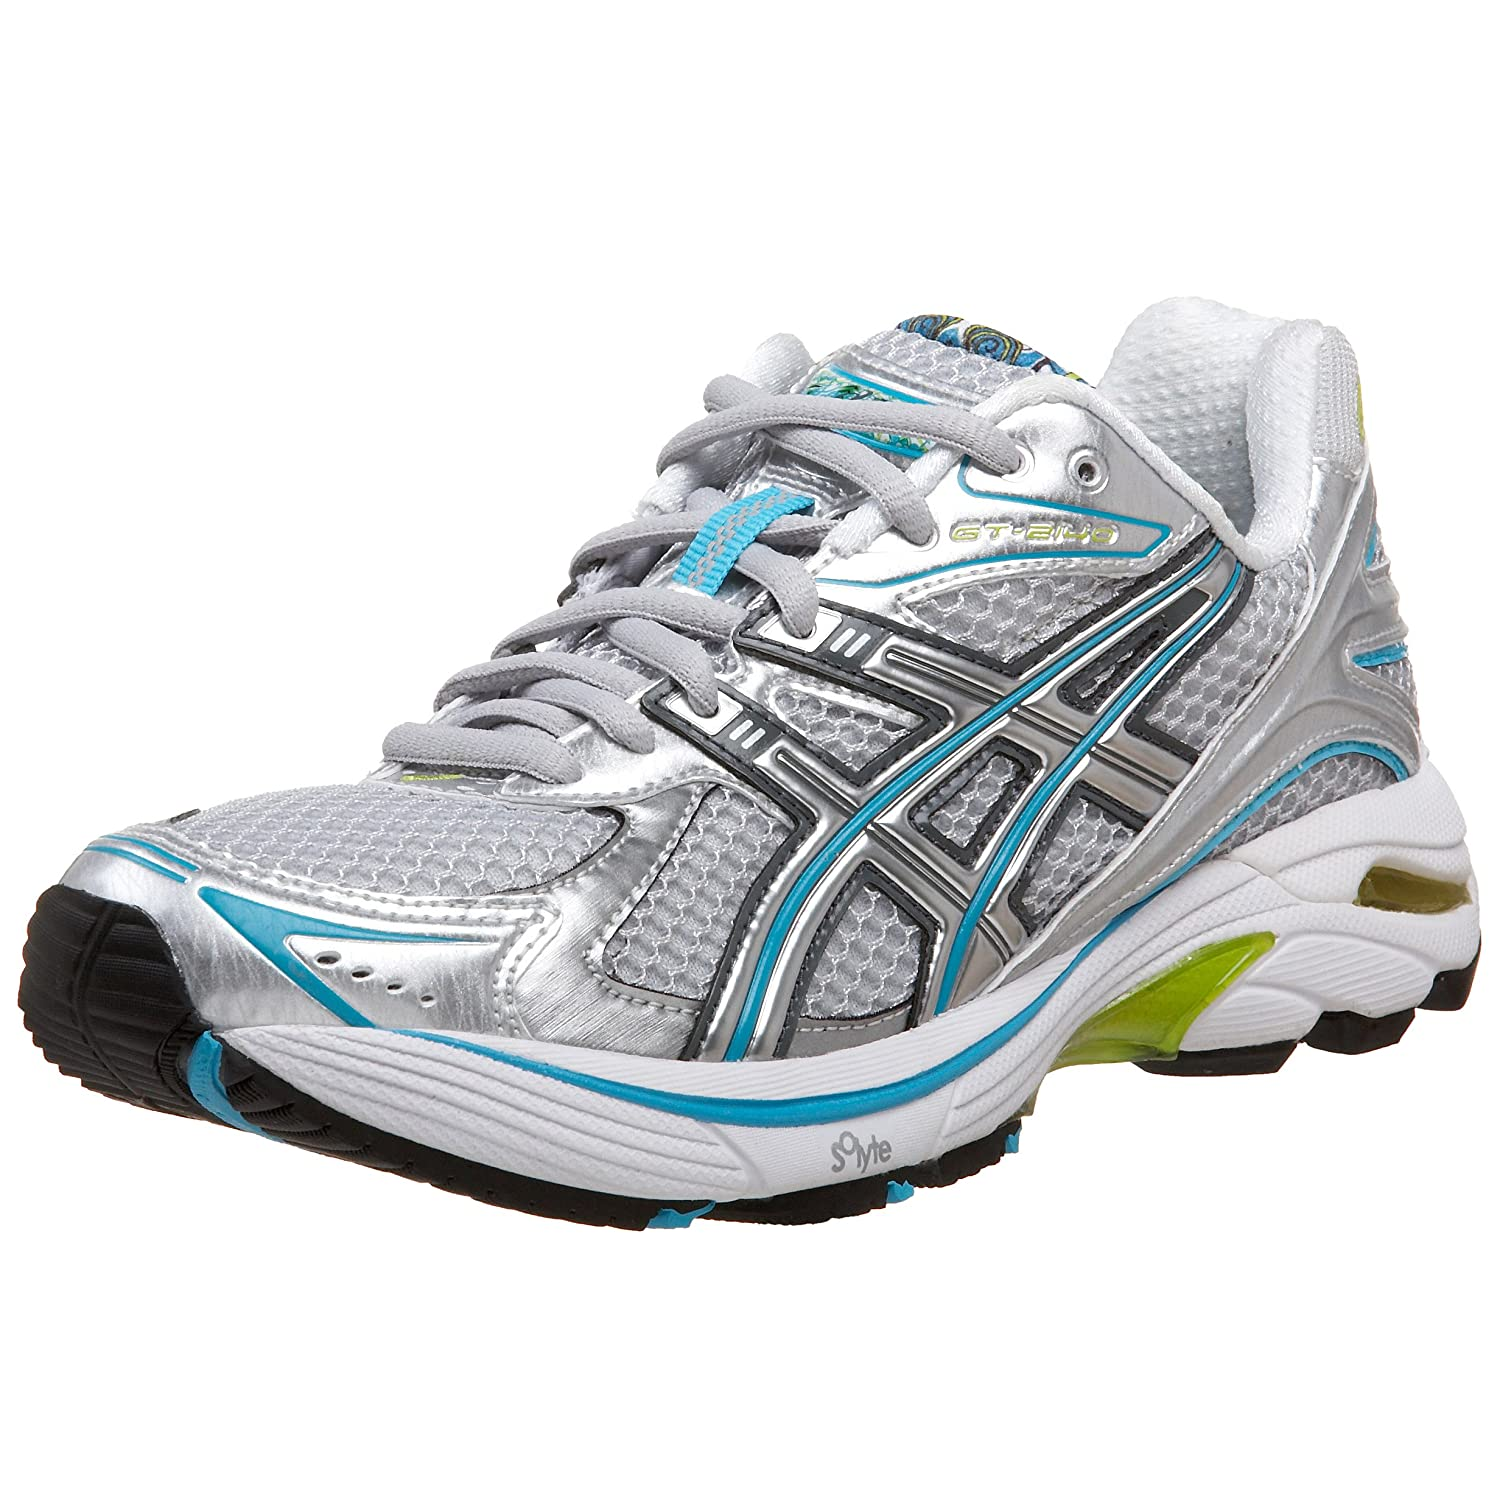 Details about Asics GT 2140 Running Cross Training Shoes White Blue Women's Sz 6